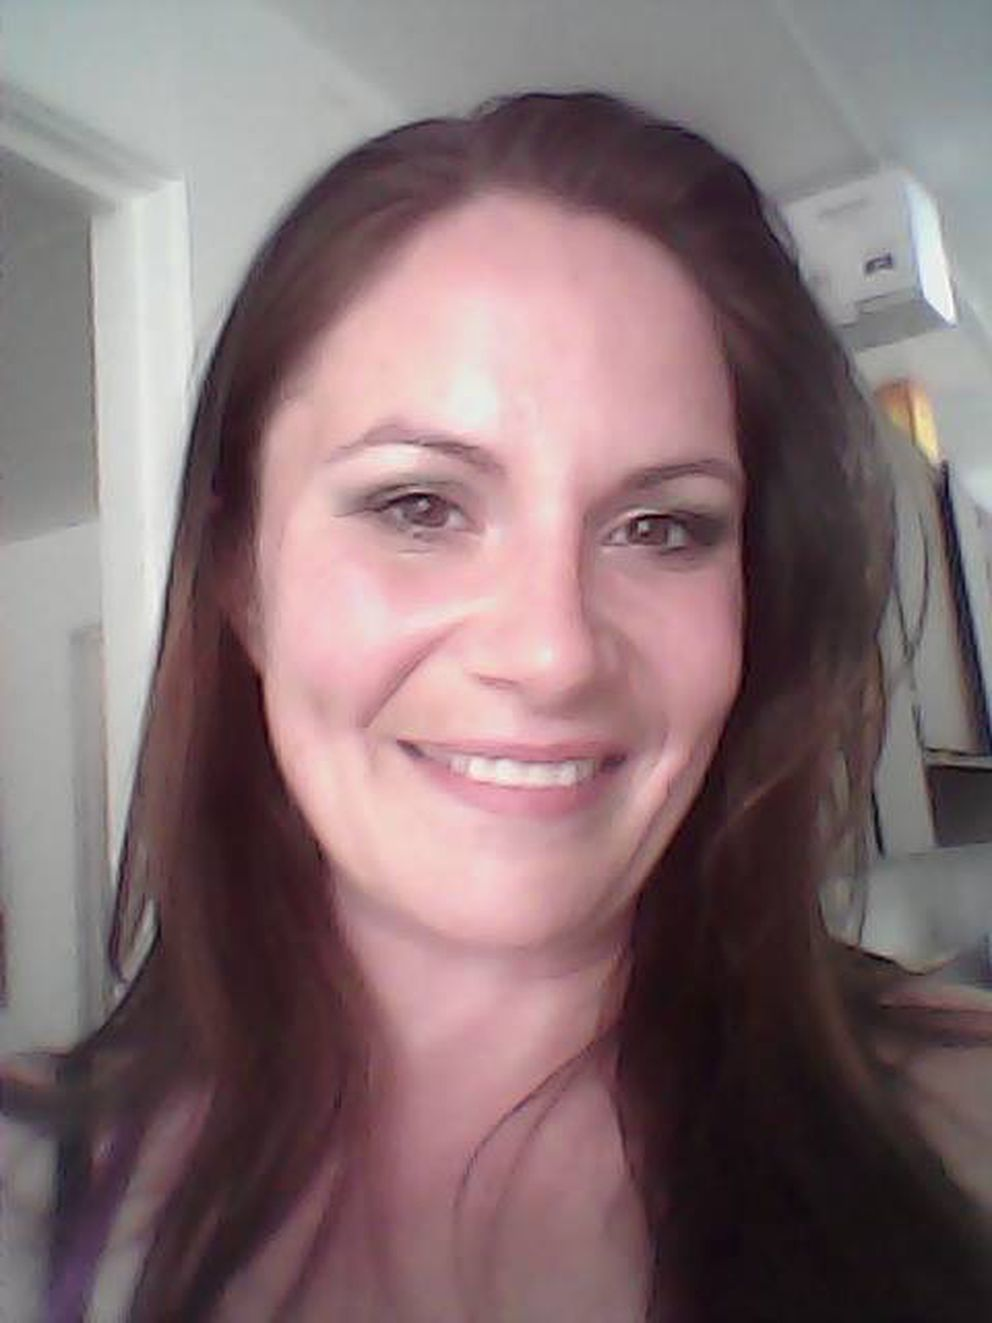 Amanda 'Mandy ' Hammons, 32, died in an Anchorage house fire on July 18, 2019. (Facebook)